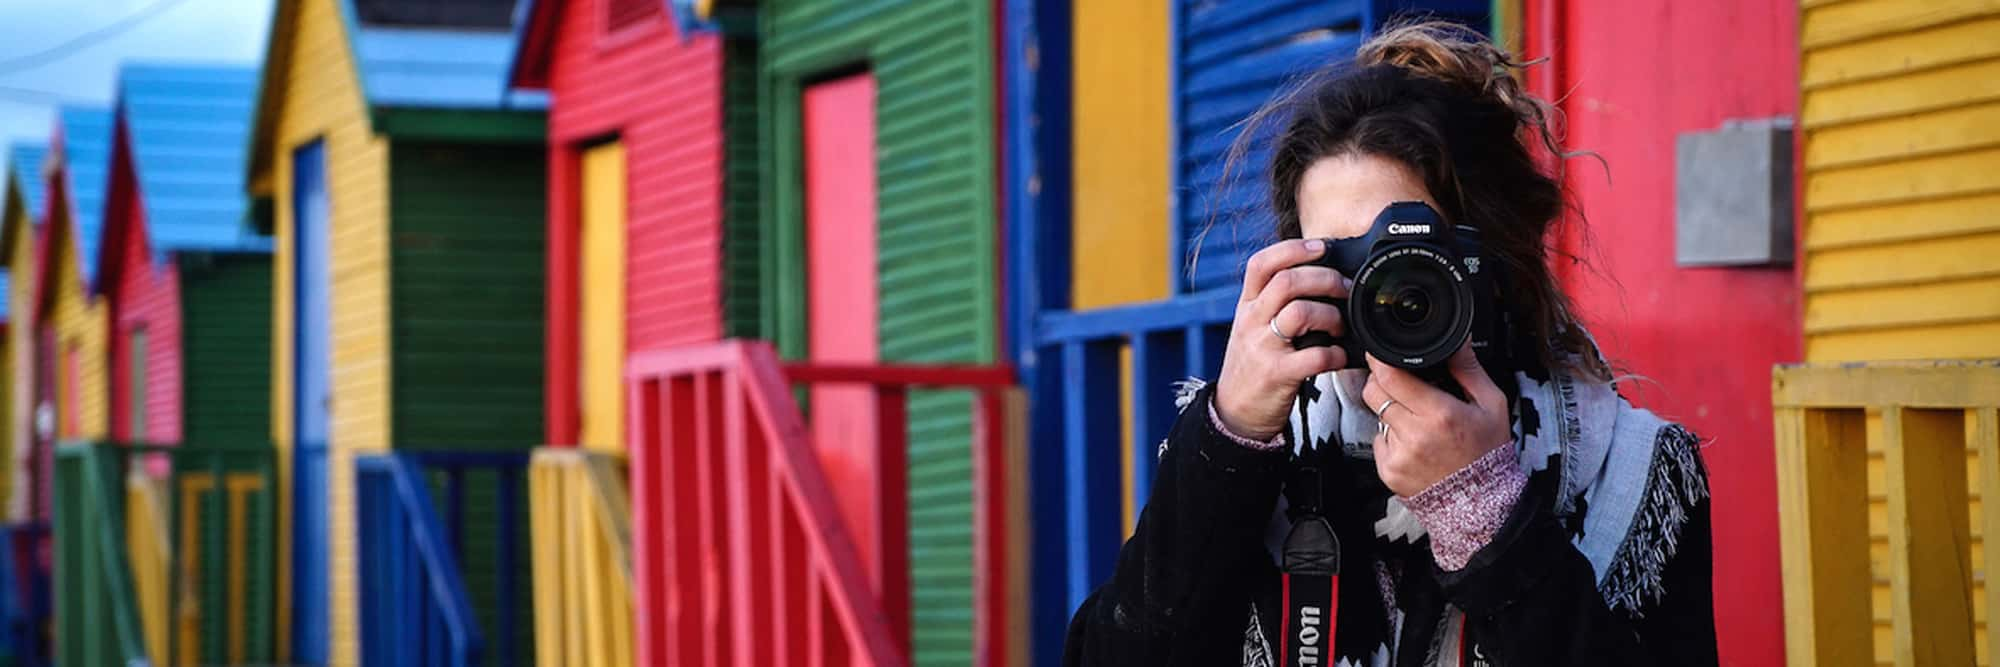 5 Reasons For Doing A Nonprofit Photography Internship in Cape Town